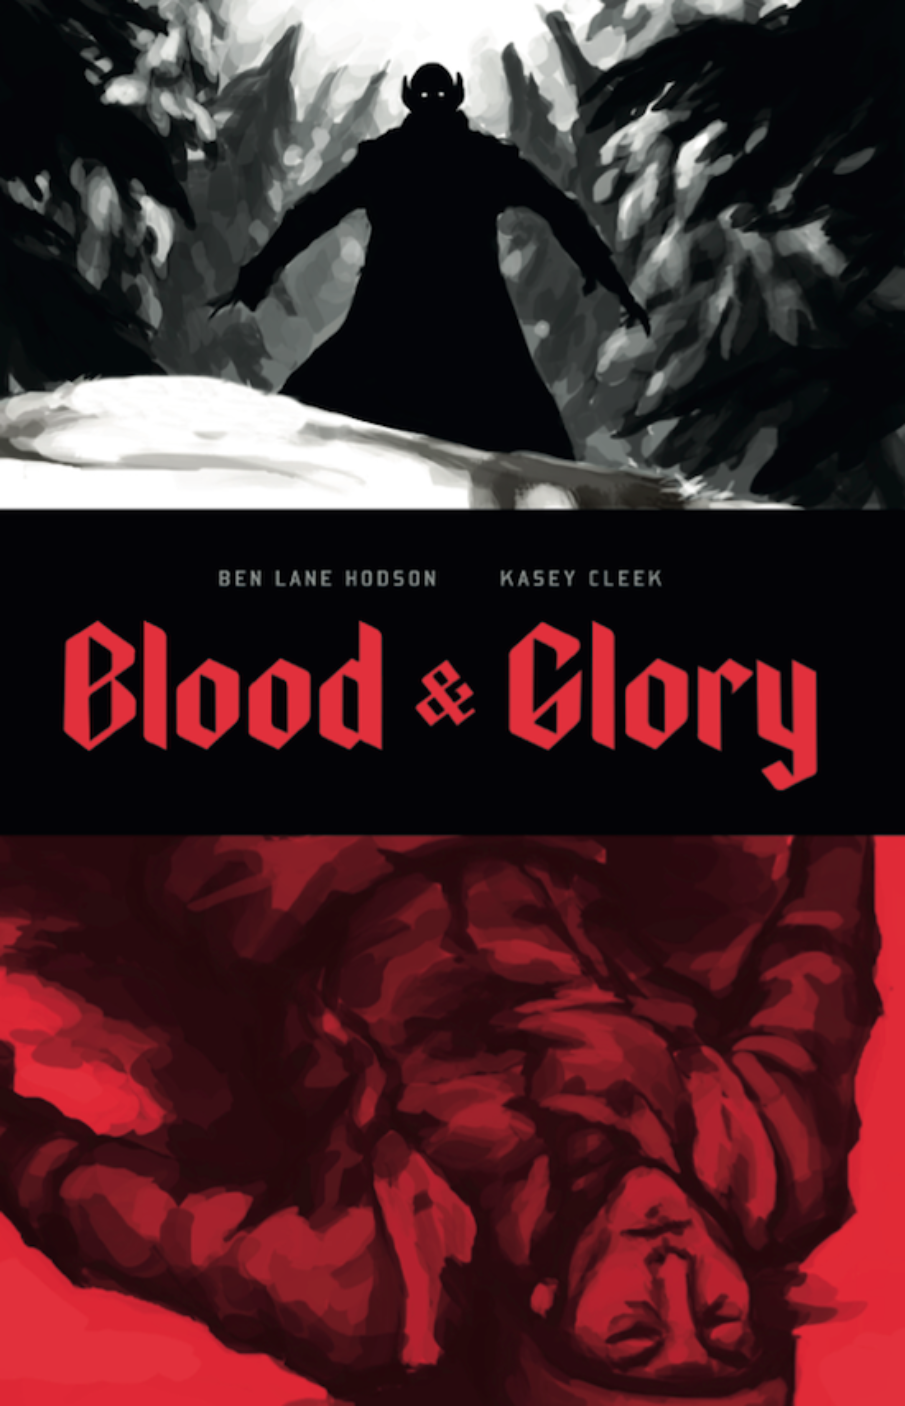 Blood & Glory Issue #1 Release